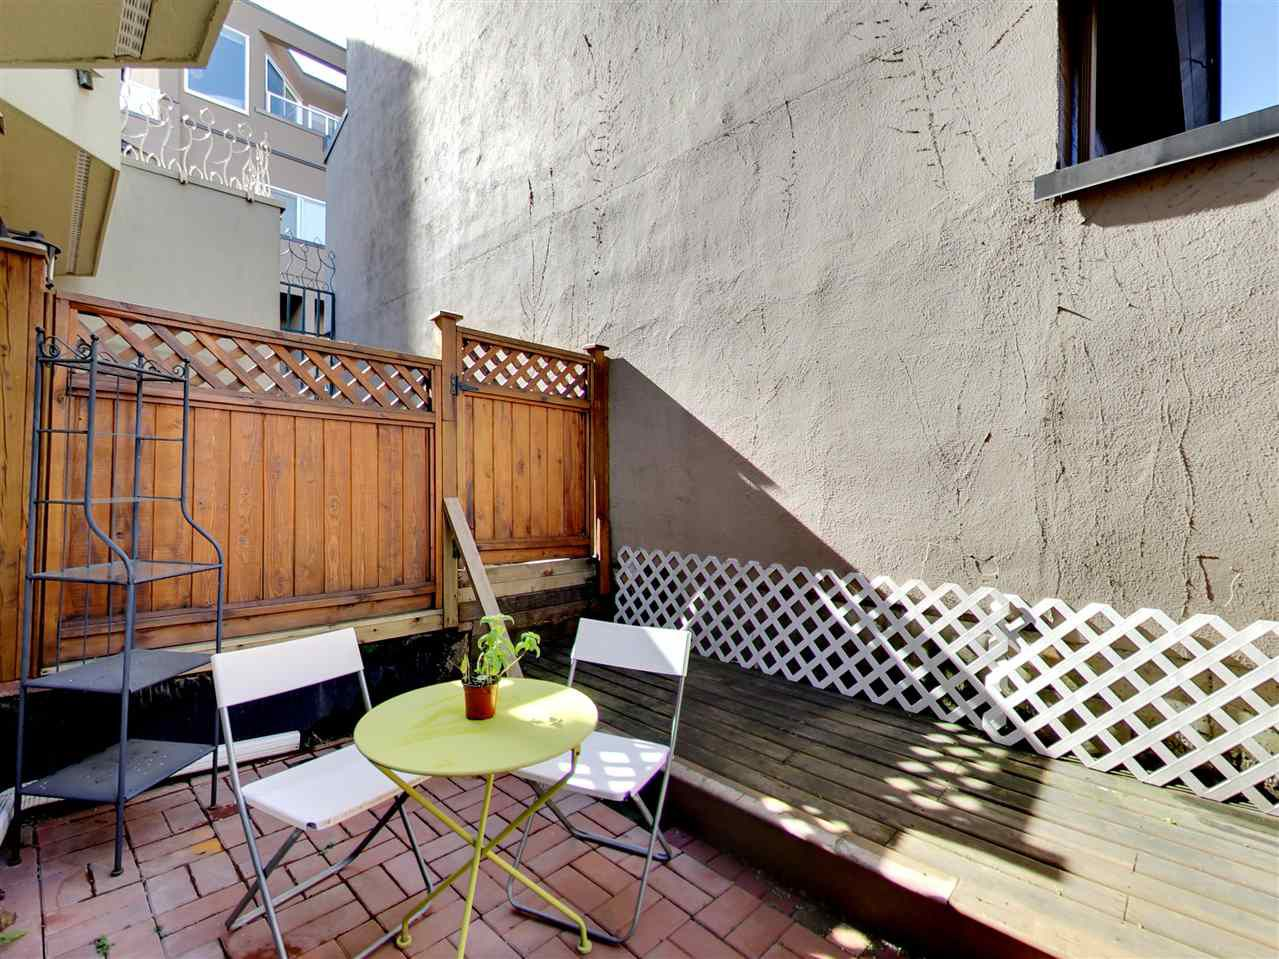 Main Photo: 2309 ALDER STREET in Vancouver: Fairview VW Condo for sale (Vancouver West)  : MLS®# R2115607